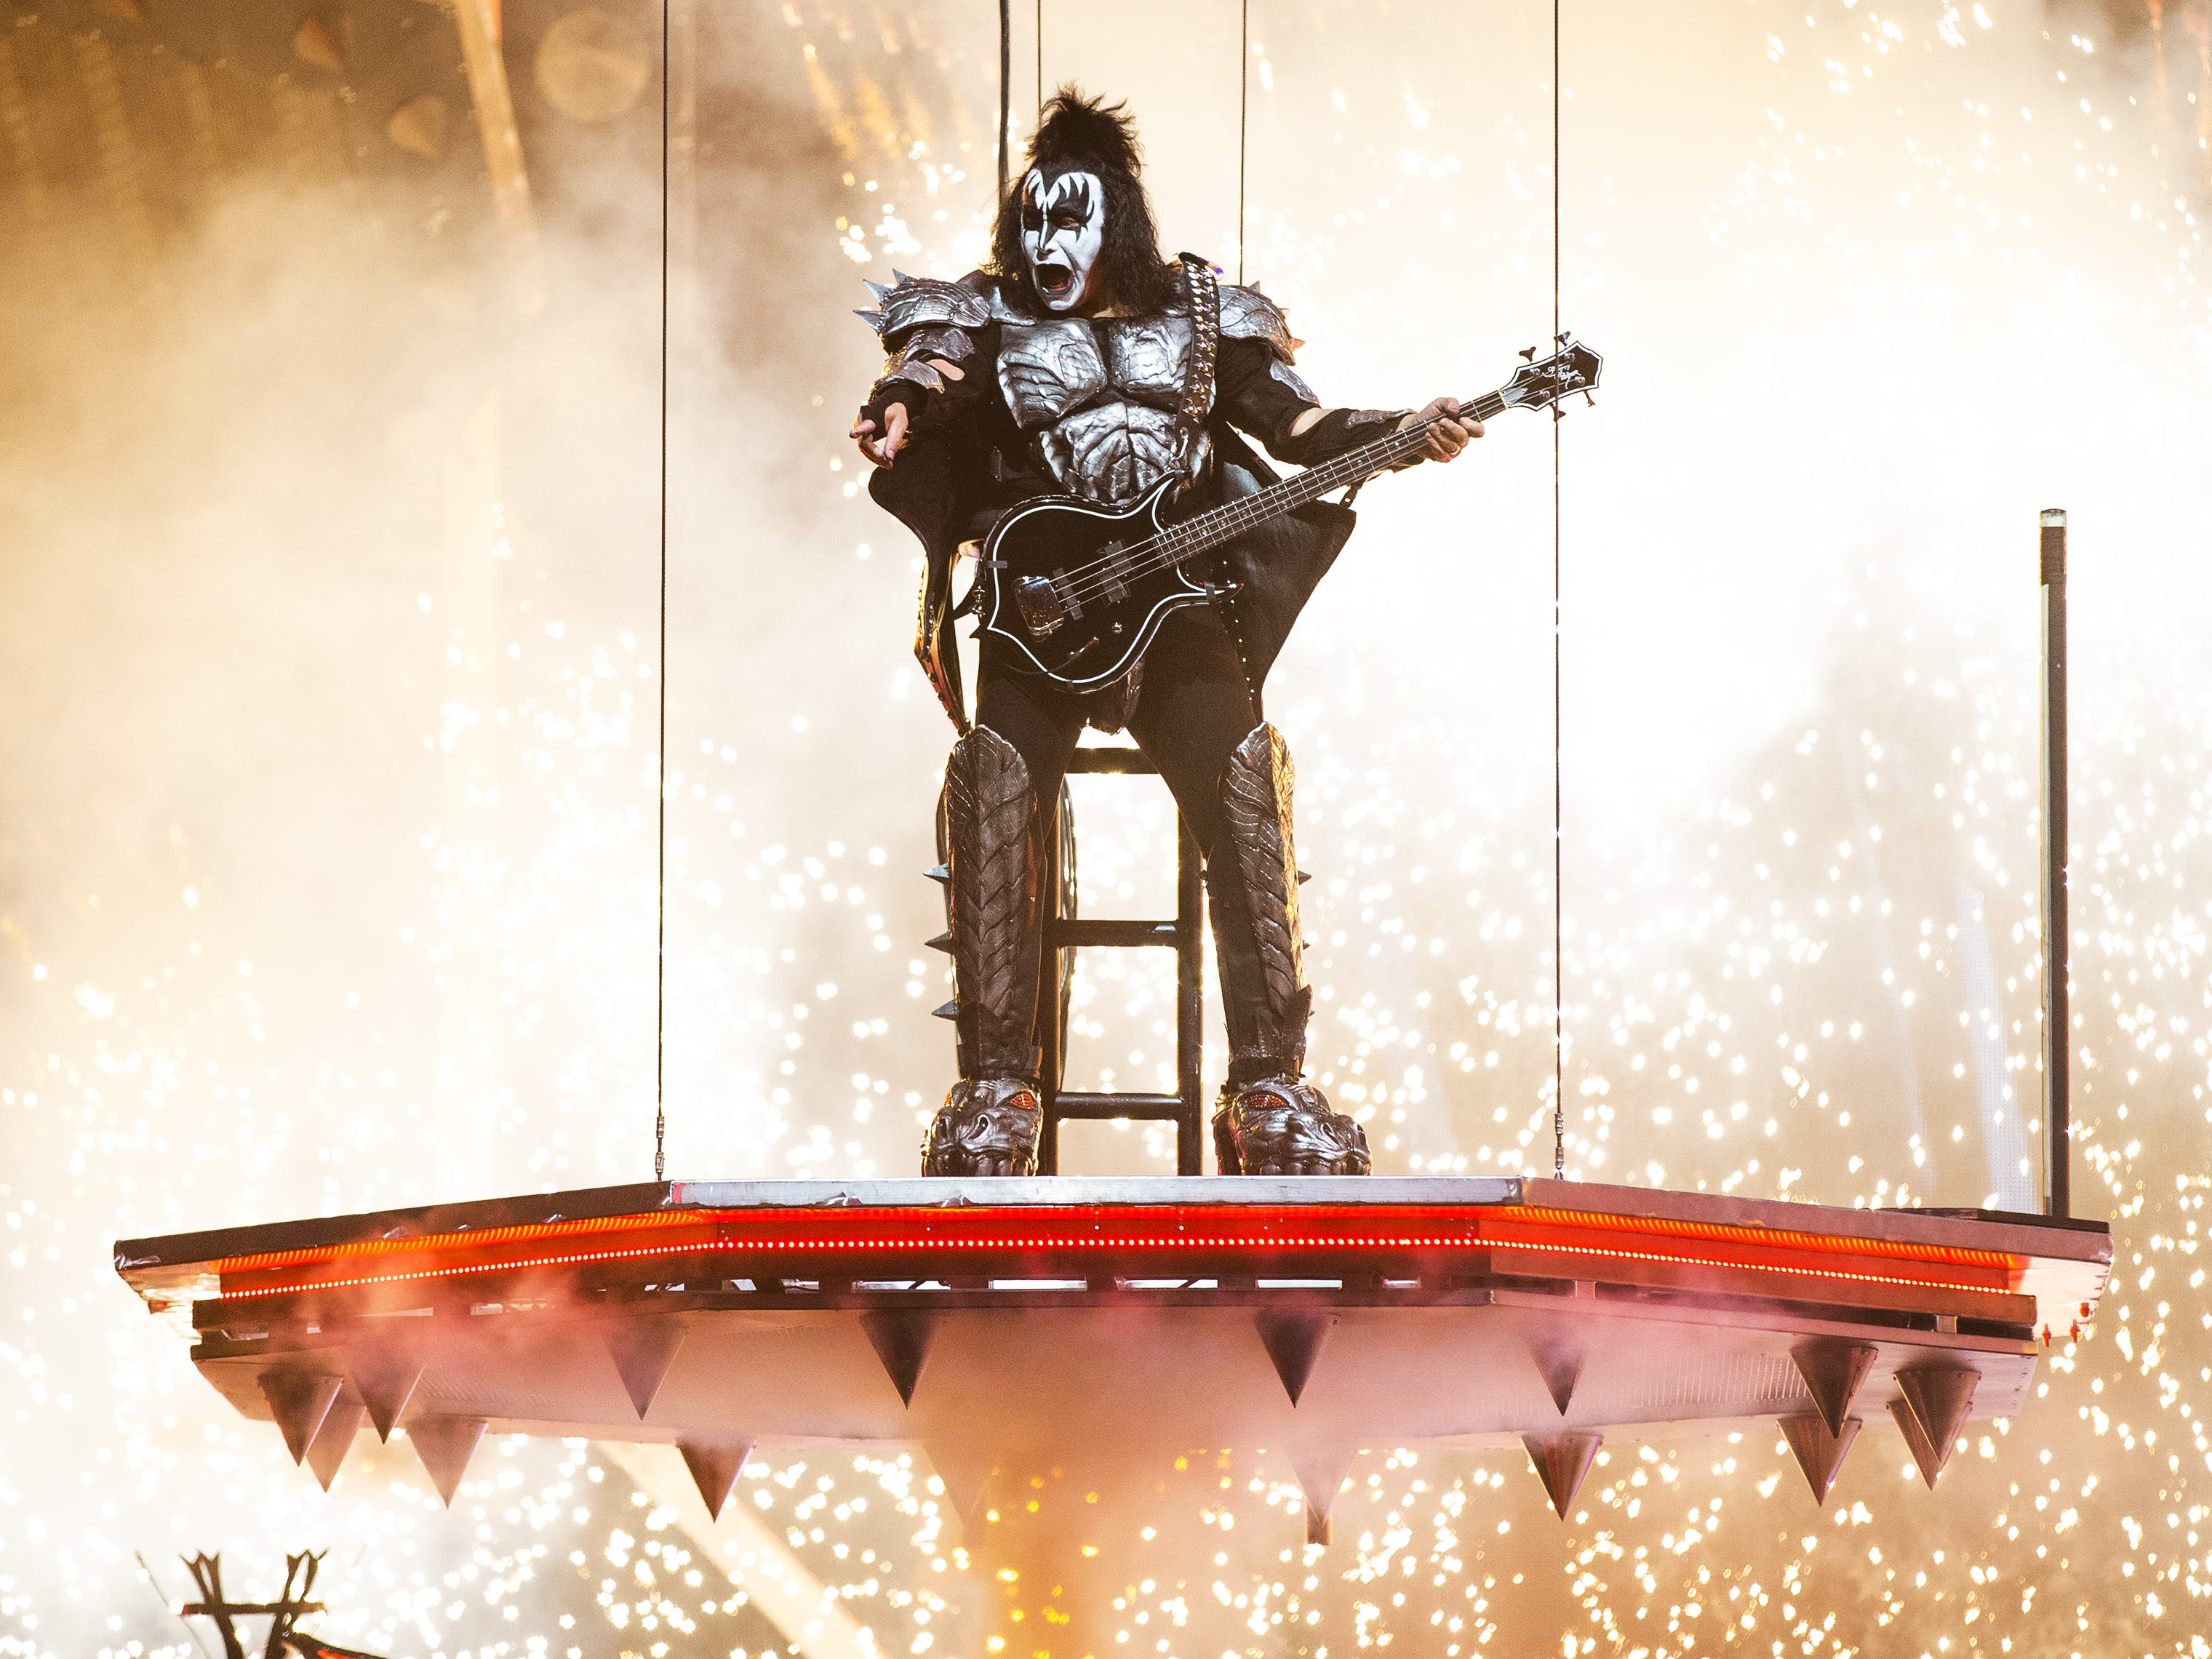 "Gene Simmons of Kiss descends during the opening number, ""Detroit Rock City,"" at Gila River Arena during the End of the Road World Tour stop in Glendale, Wednesday, Feb. 13, 2019. Thousands of fans came to see the band's farewell concert."